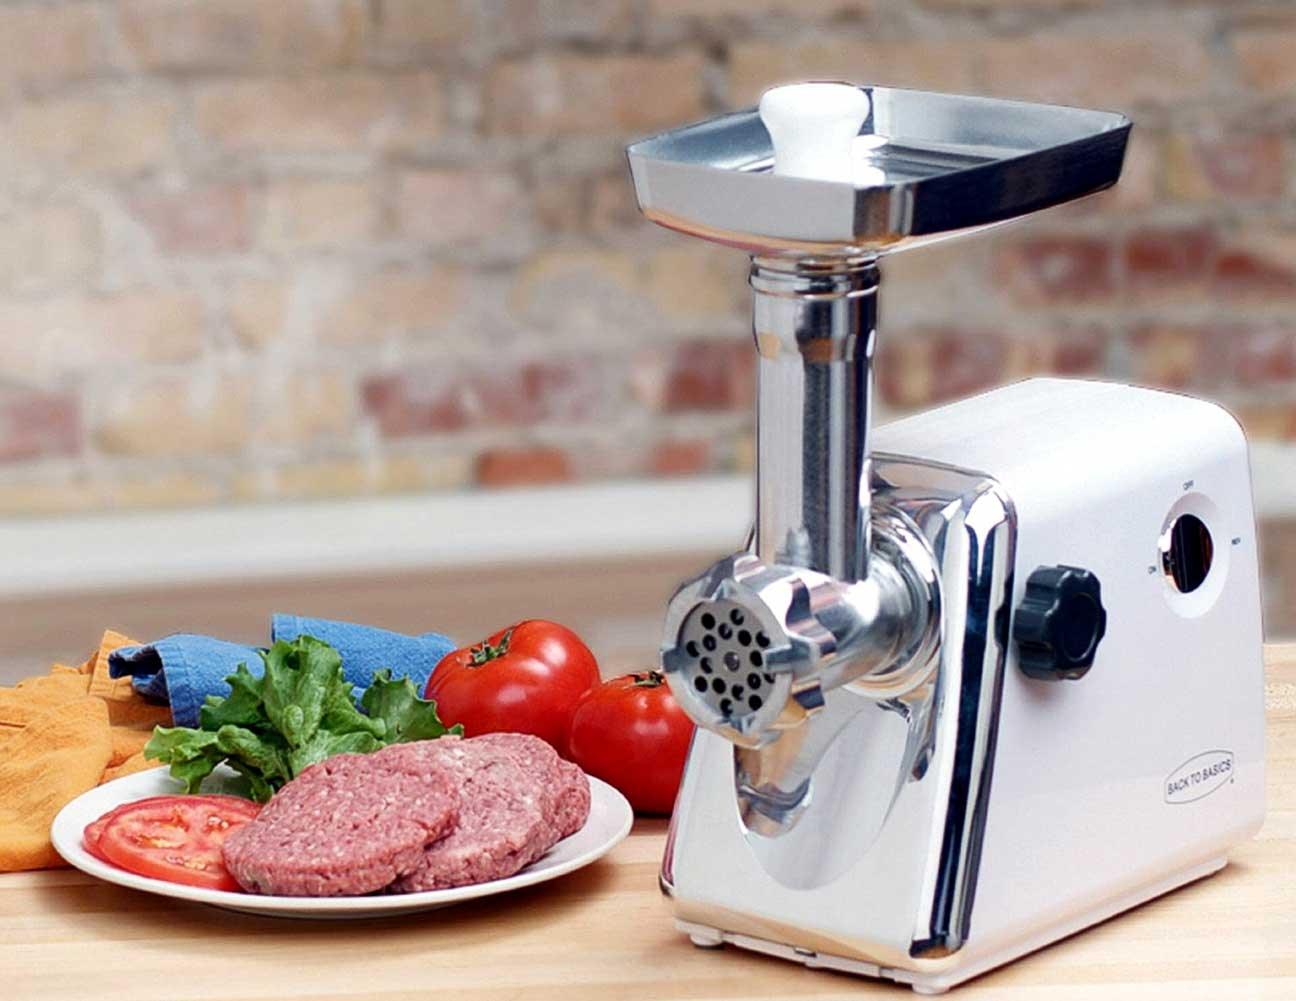 electric grinder kitchen island cooktop the best meat grinders of 2017 manual and commercial b2b 4500 1200